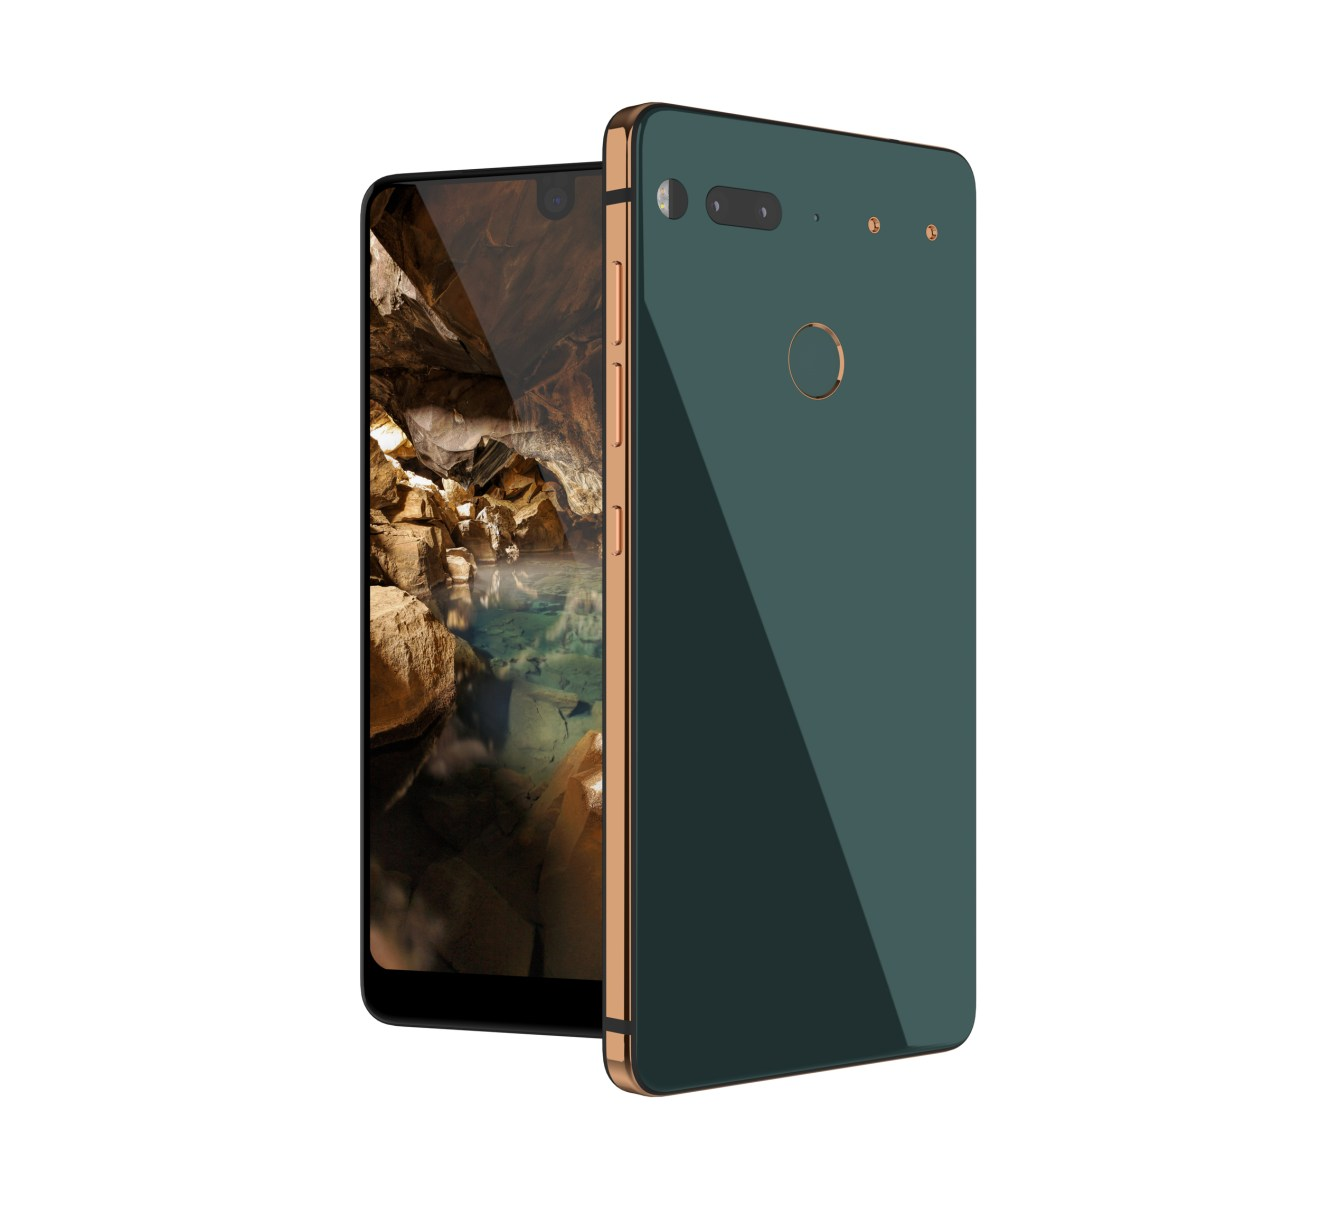 Smartphone Essential PH-1 will be available for a month and get your smart assistant